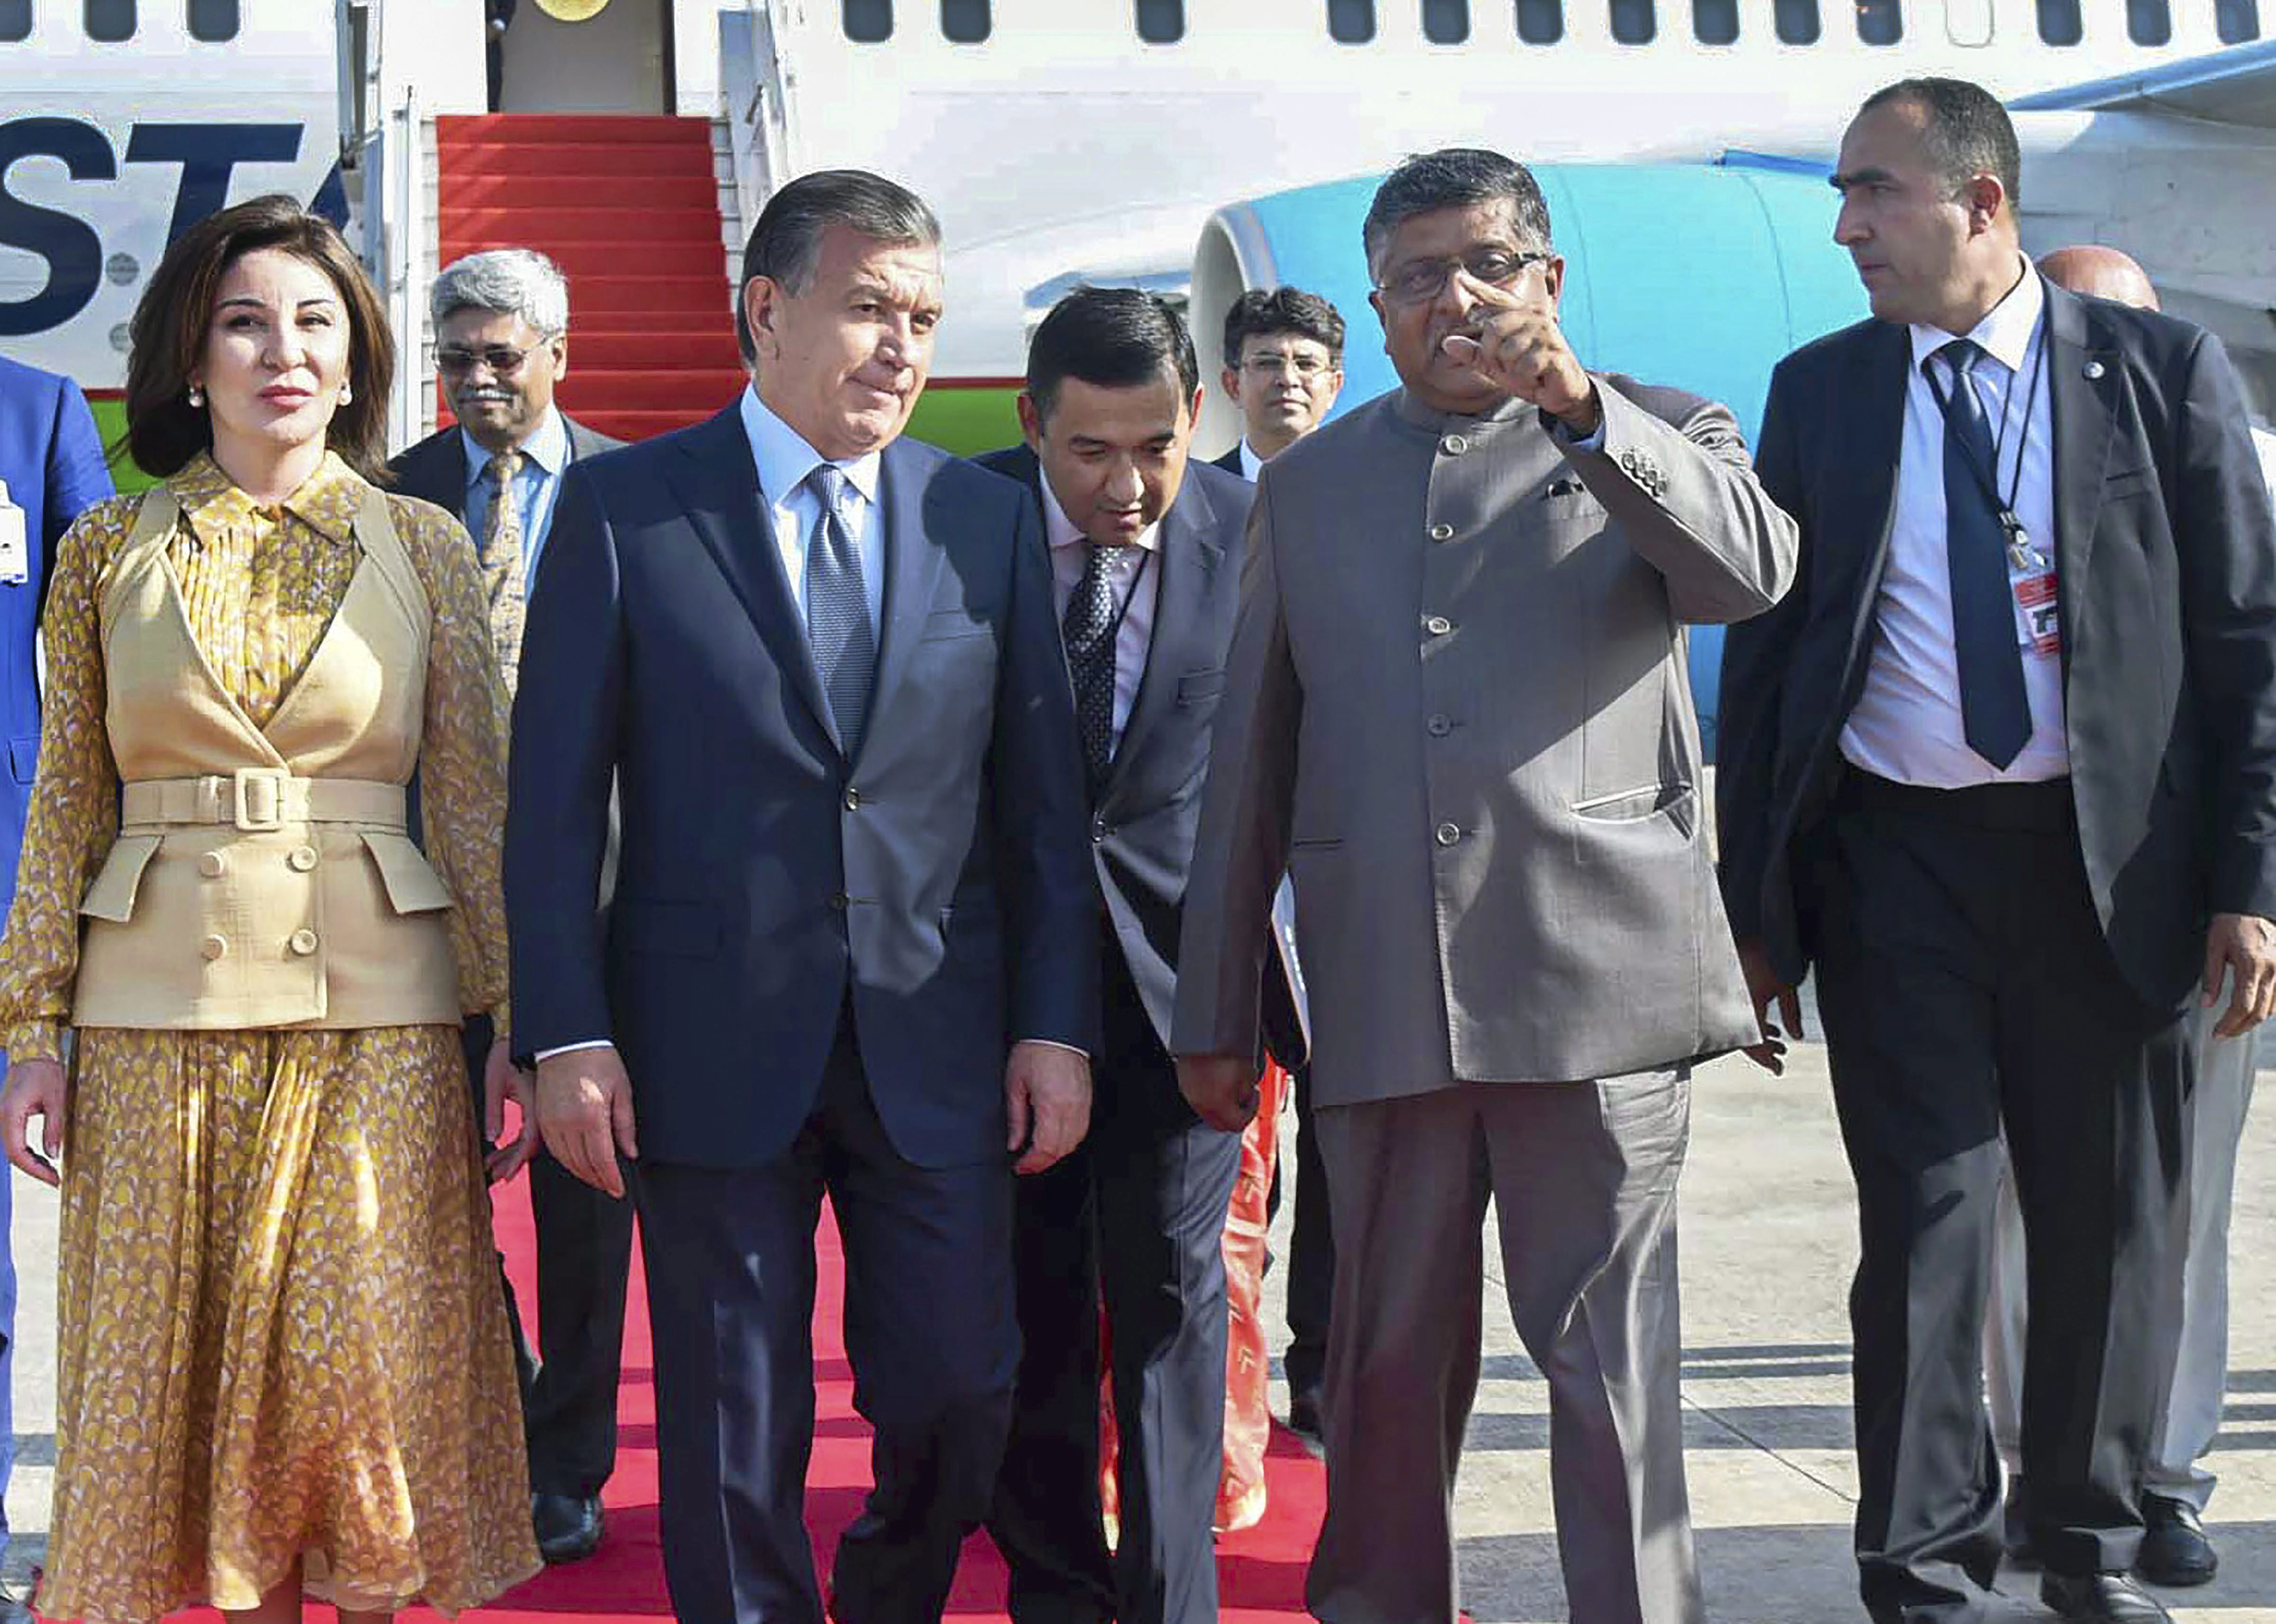 President of the Republic of Uzbekistan Shavkat Mirziyoyev being received by the Union Minister for Electronics & Information Technology and Law & Justice Ravi Shankar Prasad, in New Delhi - PTI